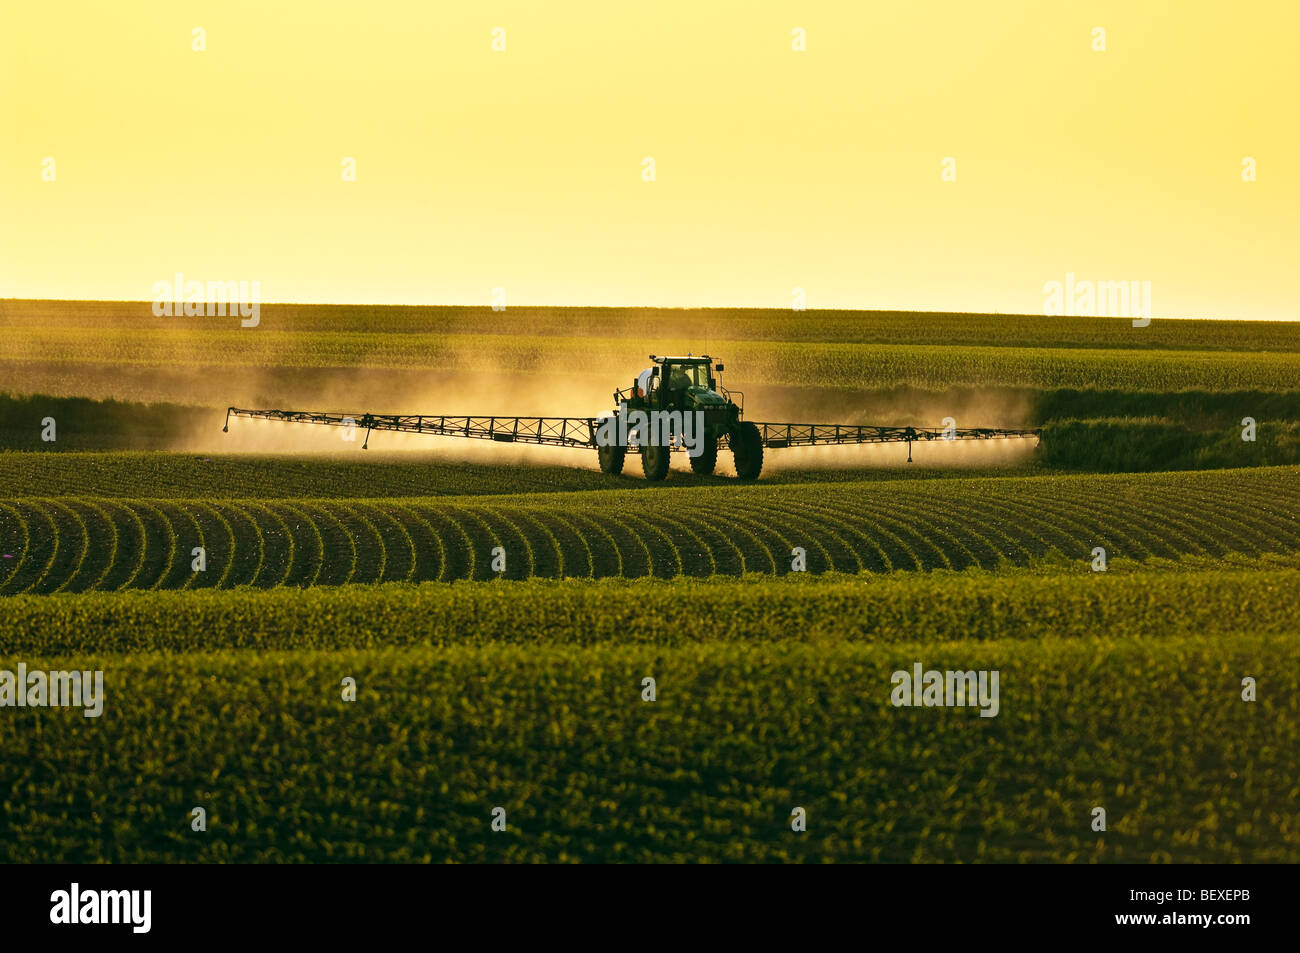 Post-emergent herbicide being applied to an early growth grain corn field by a John Deere sprayer in late afternoon - Stock Image